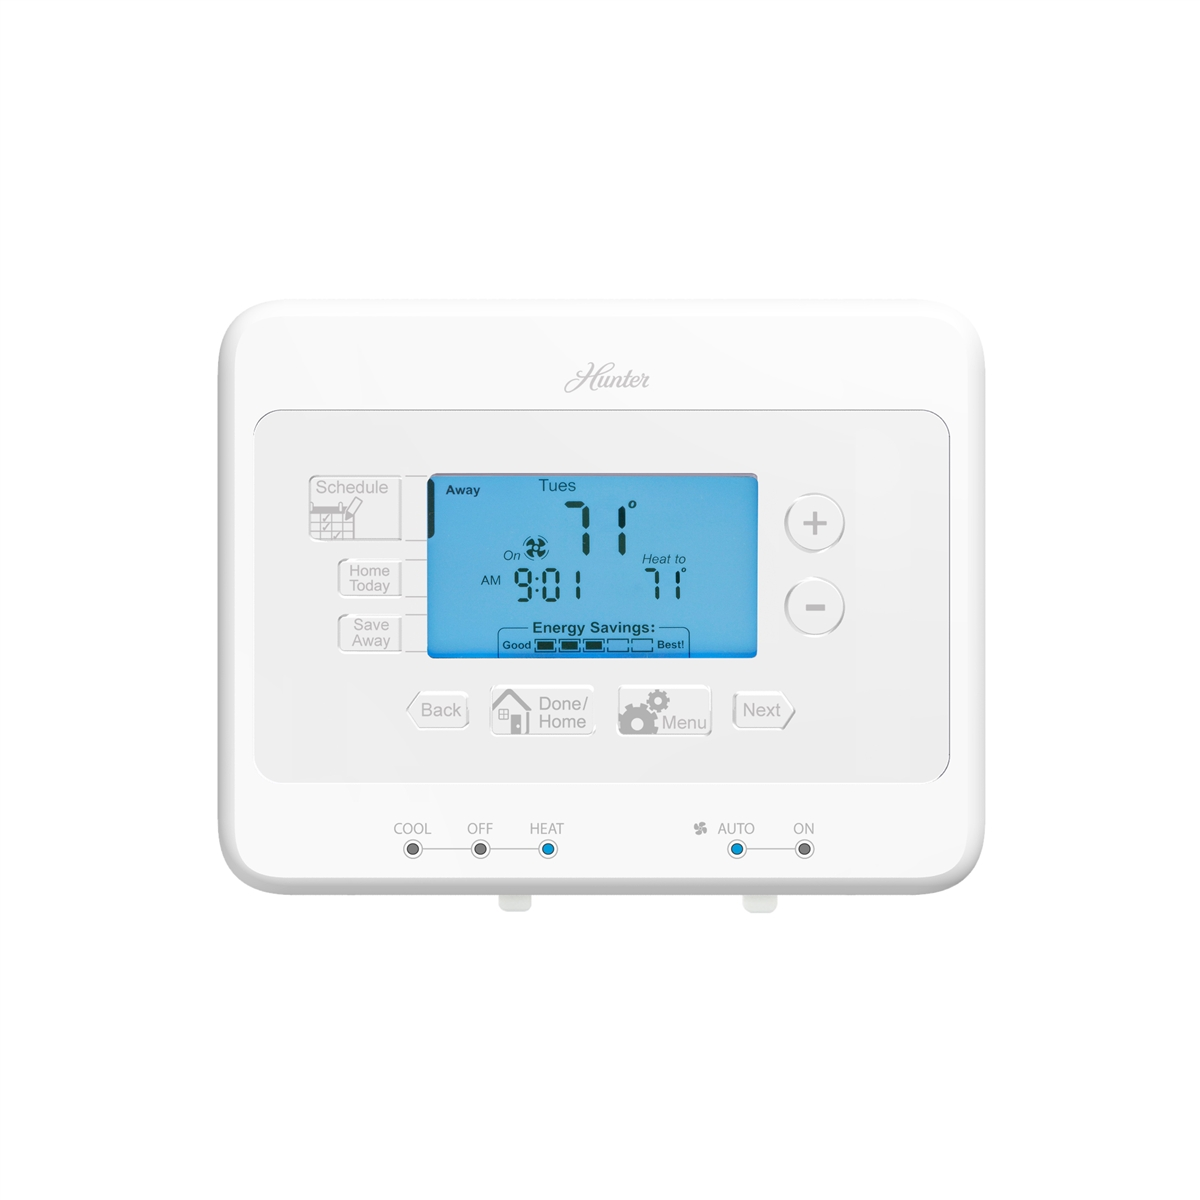 small resolution of 44378 2 1410336795 universal 7 day programmable thermostat 44378 hunter 44378 wiring diagram